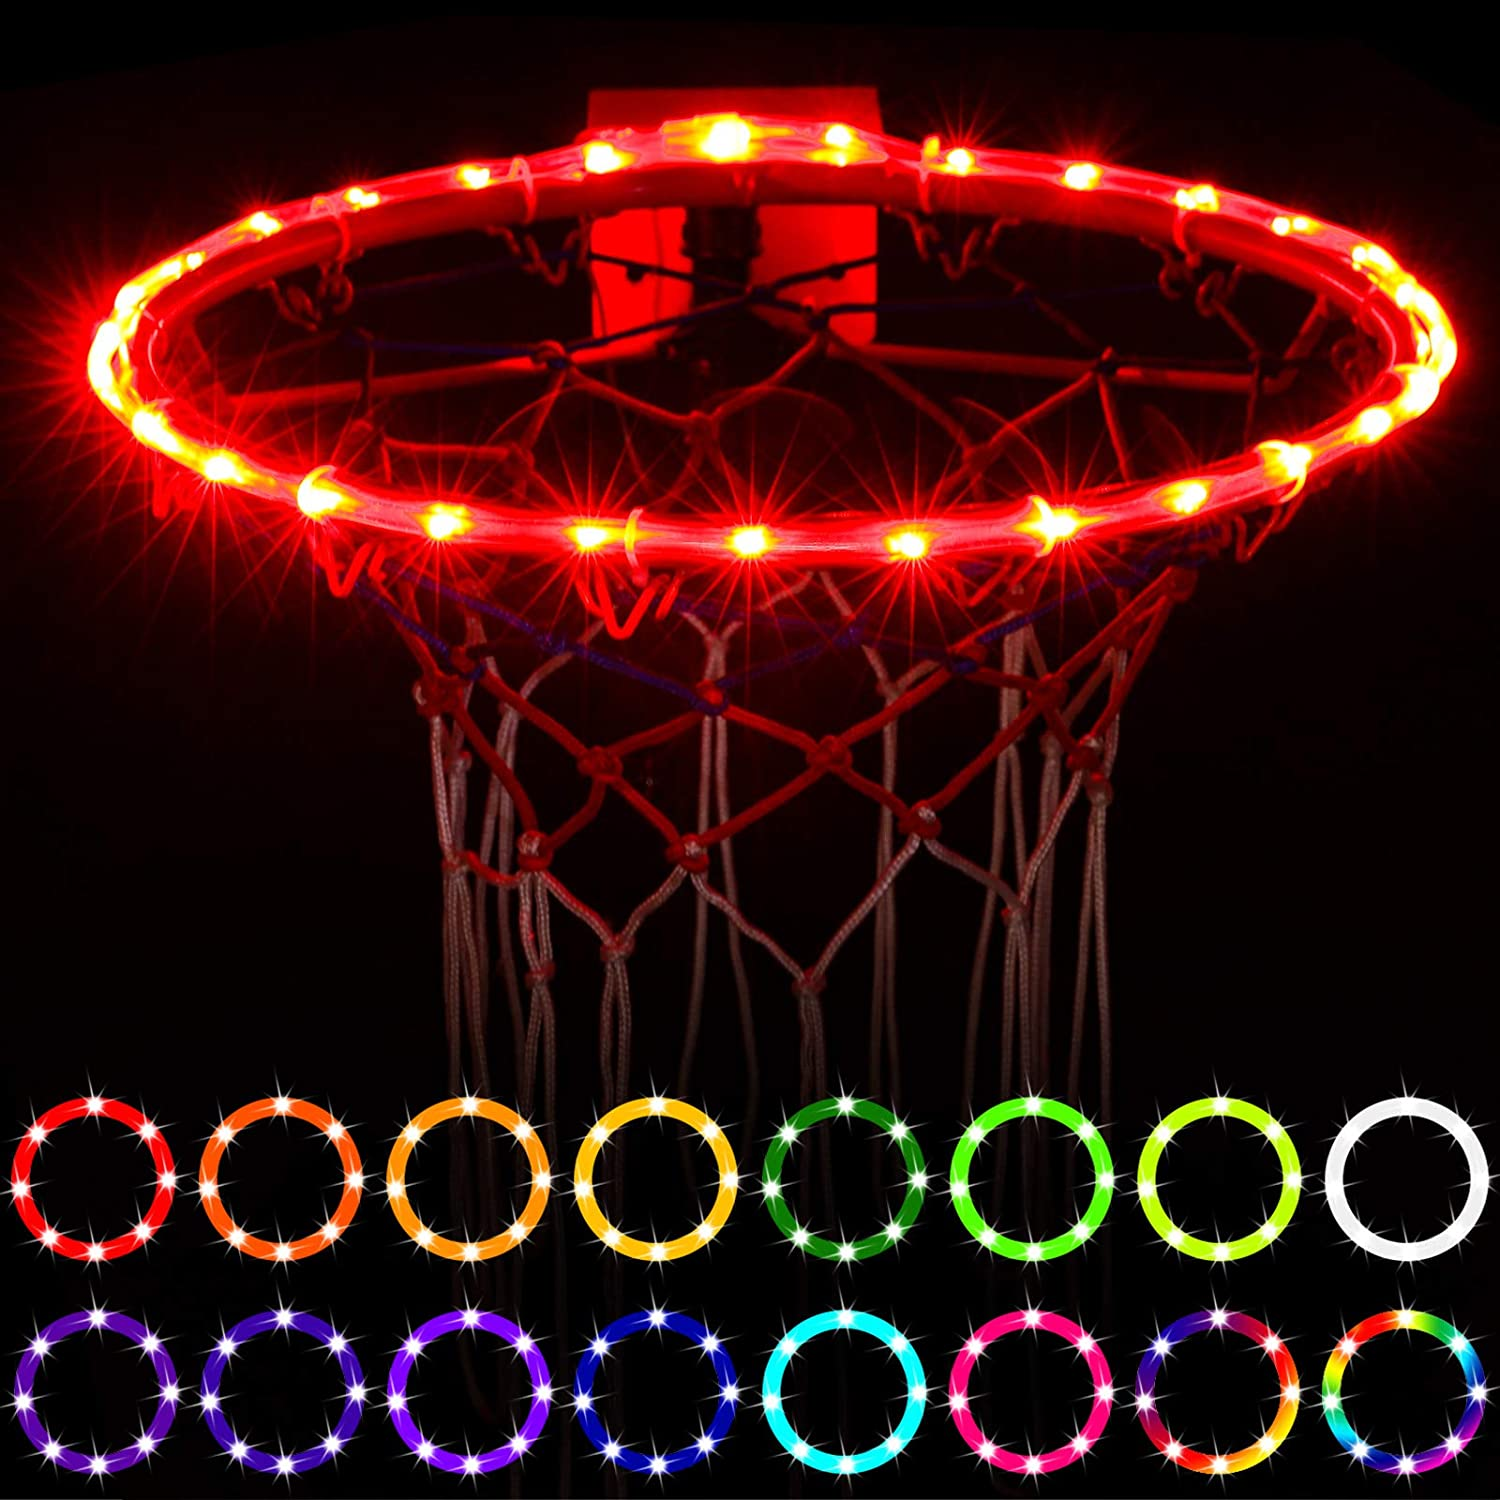 Waybelive LED Basketball Hoop Lights,Remote Control Basketball Rim LED Light, Change Color by Yourself, Waterproof,Super Bright to Play at Night Outdoors, Good Gift for Kids : Clothing